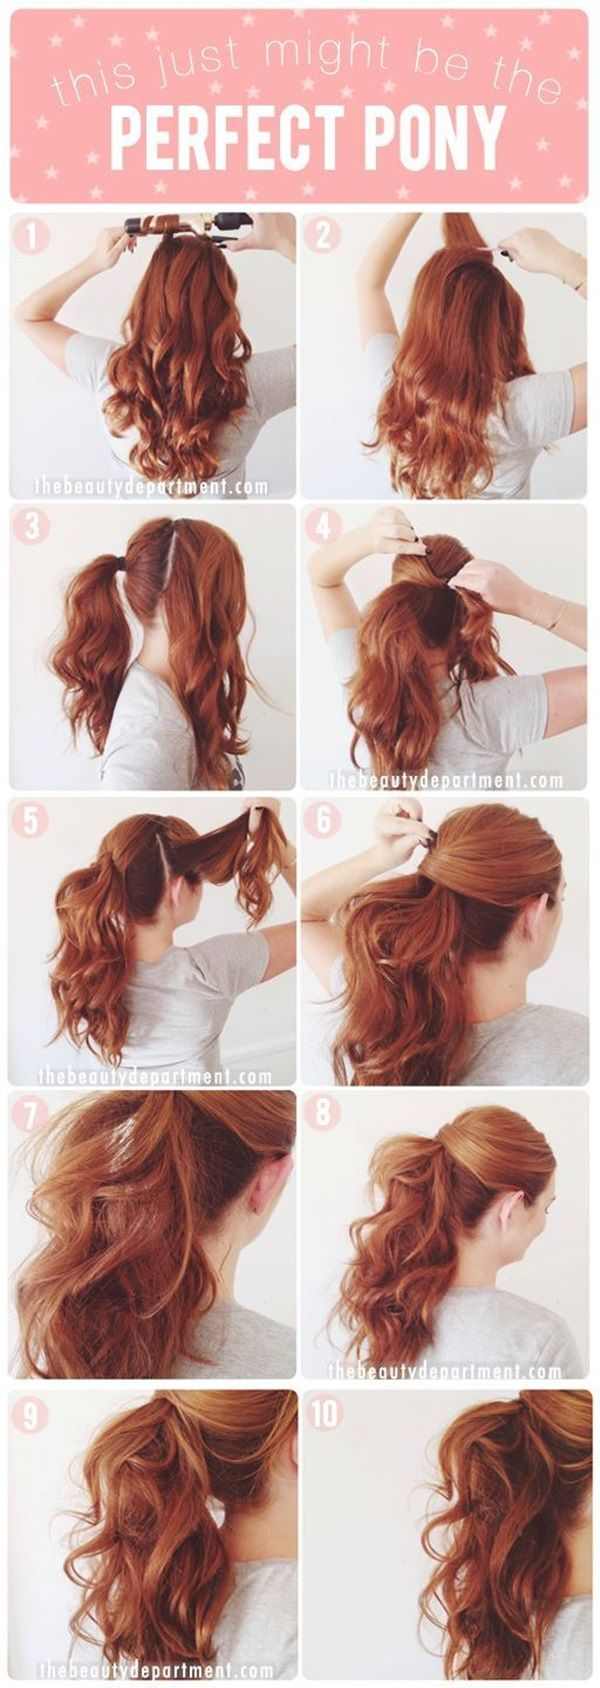 perfect, seemingly easy, ponytail | Hair styles, Party hair tutorial, Long  hair styles